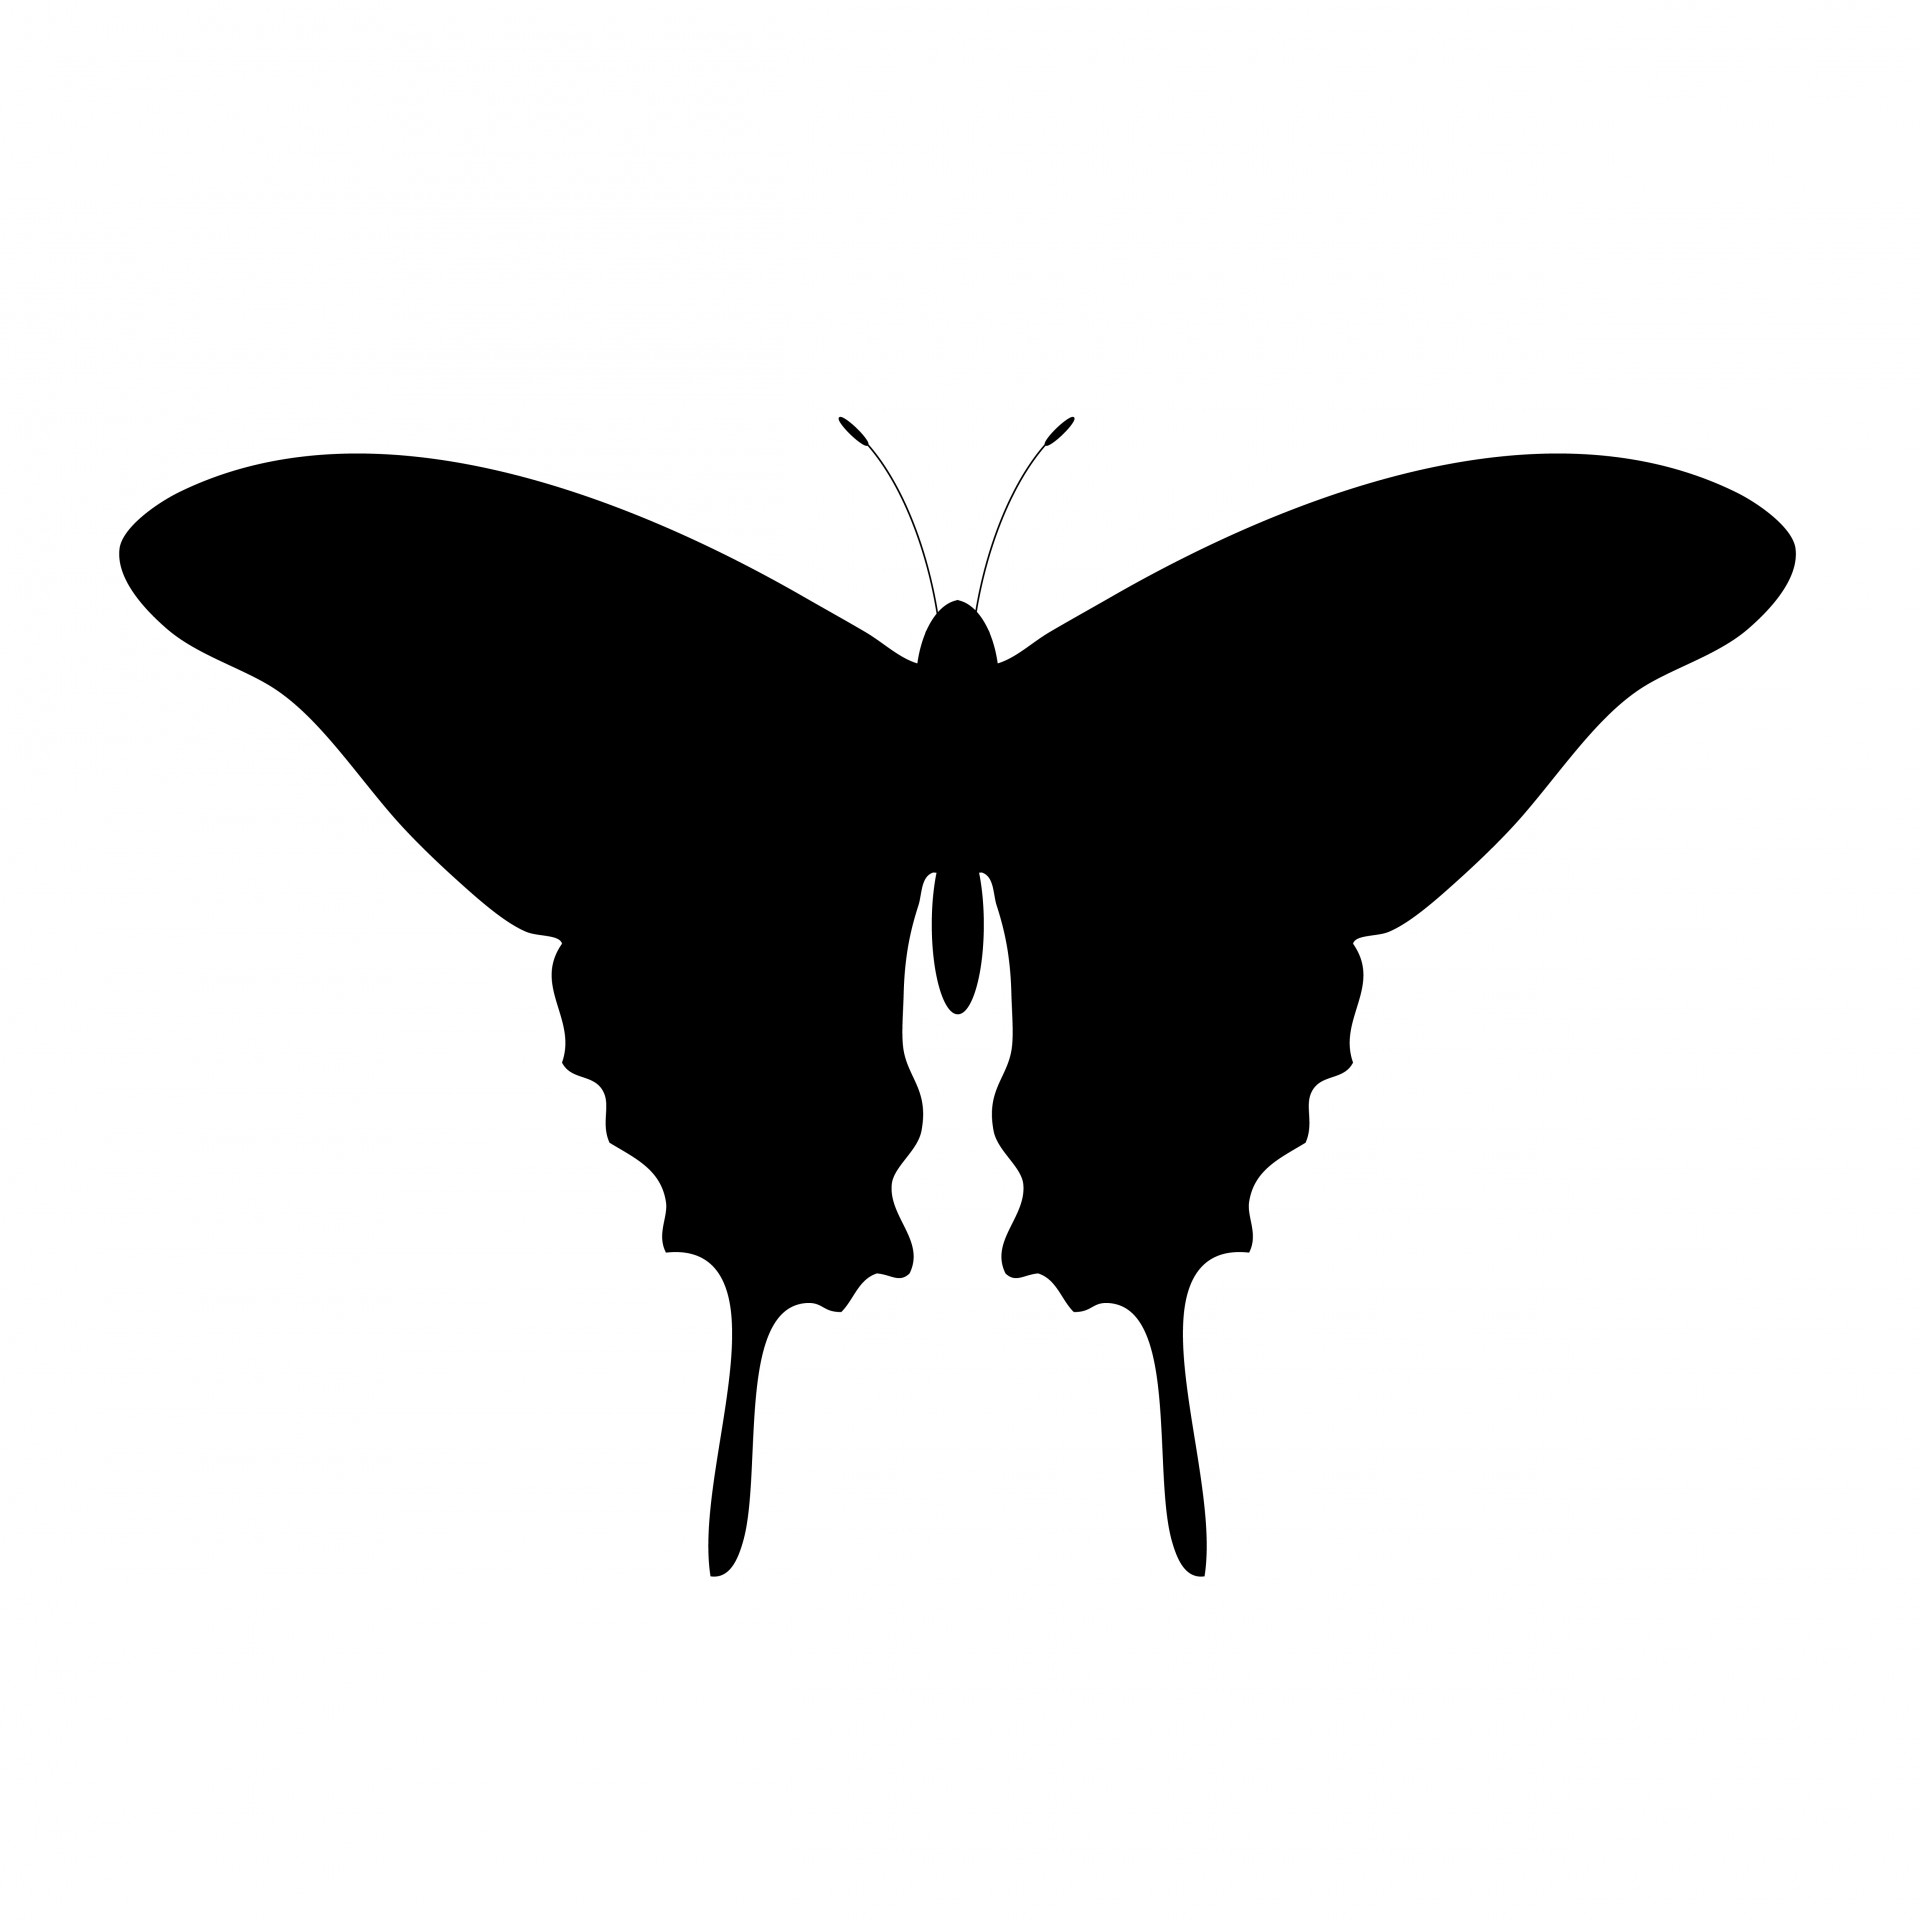 Free stock photo public. Butterfly clipart silhouette